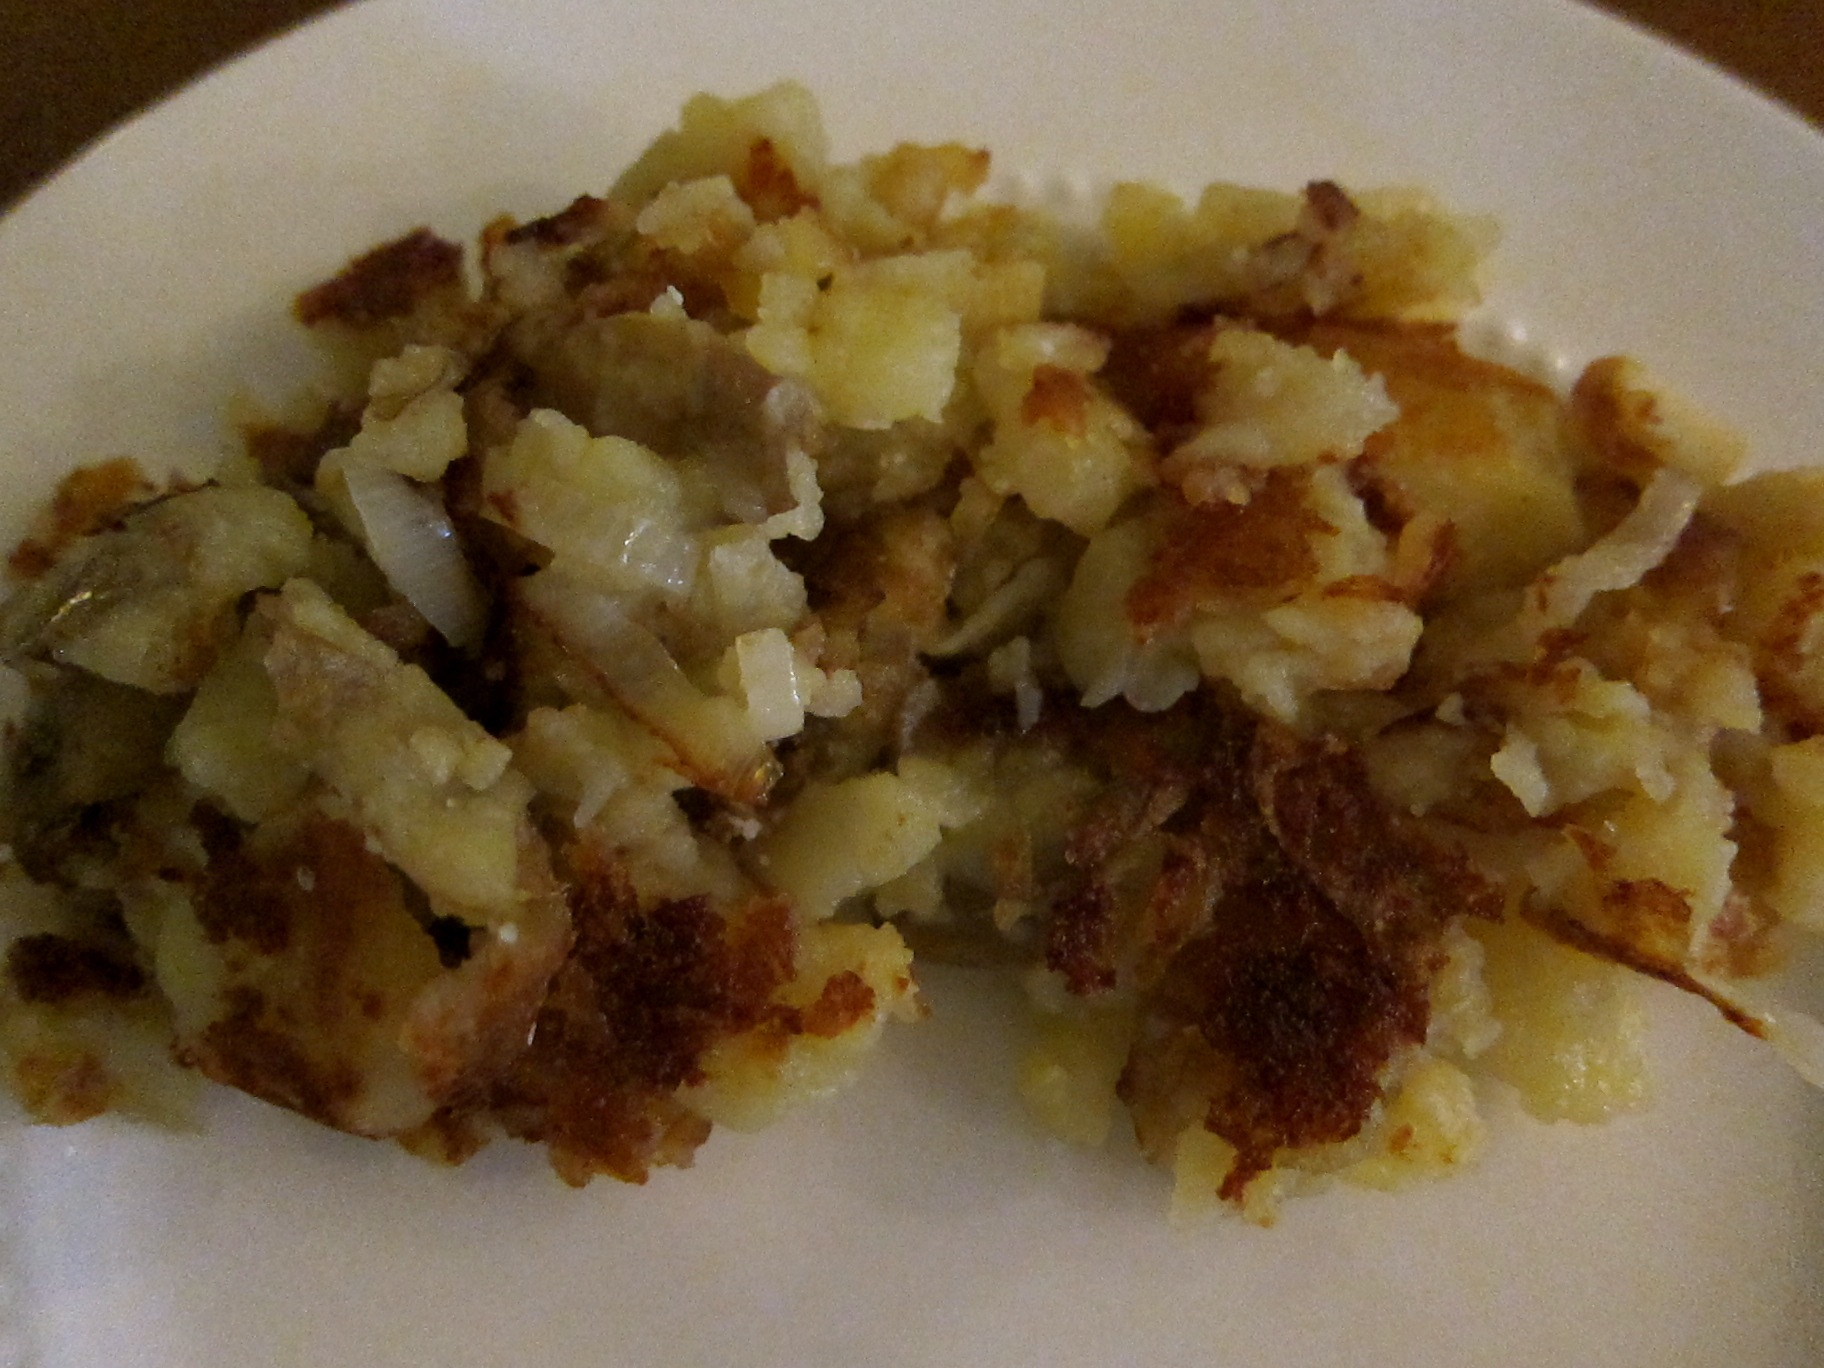 Smashed Potatoes on Plate